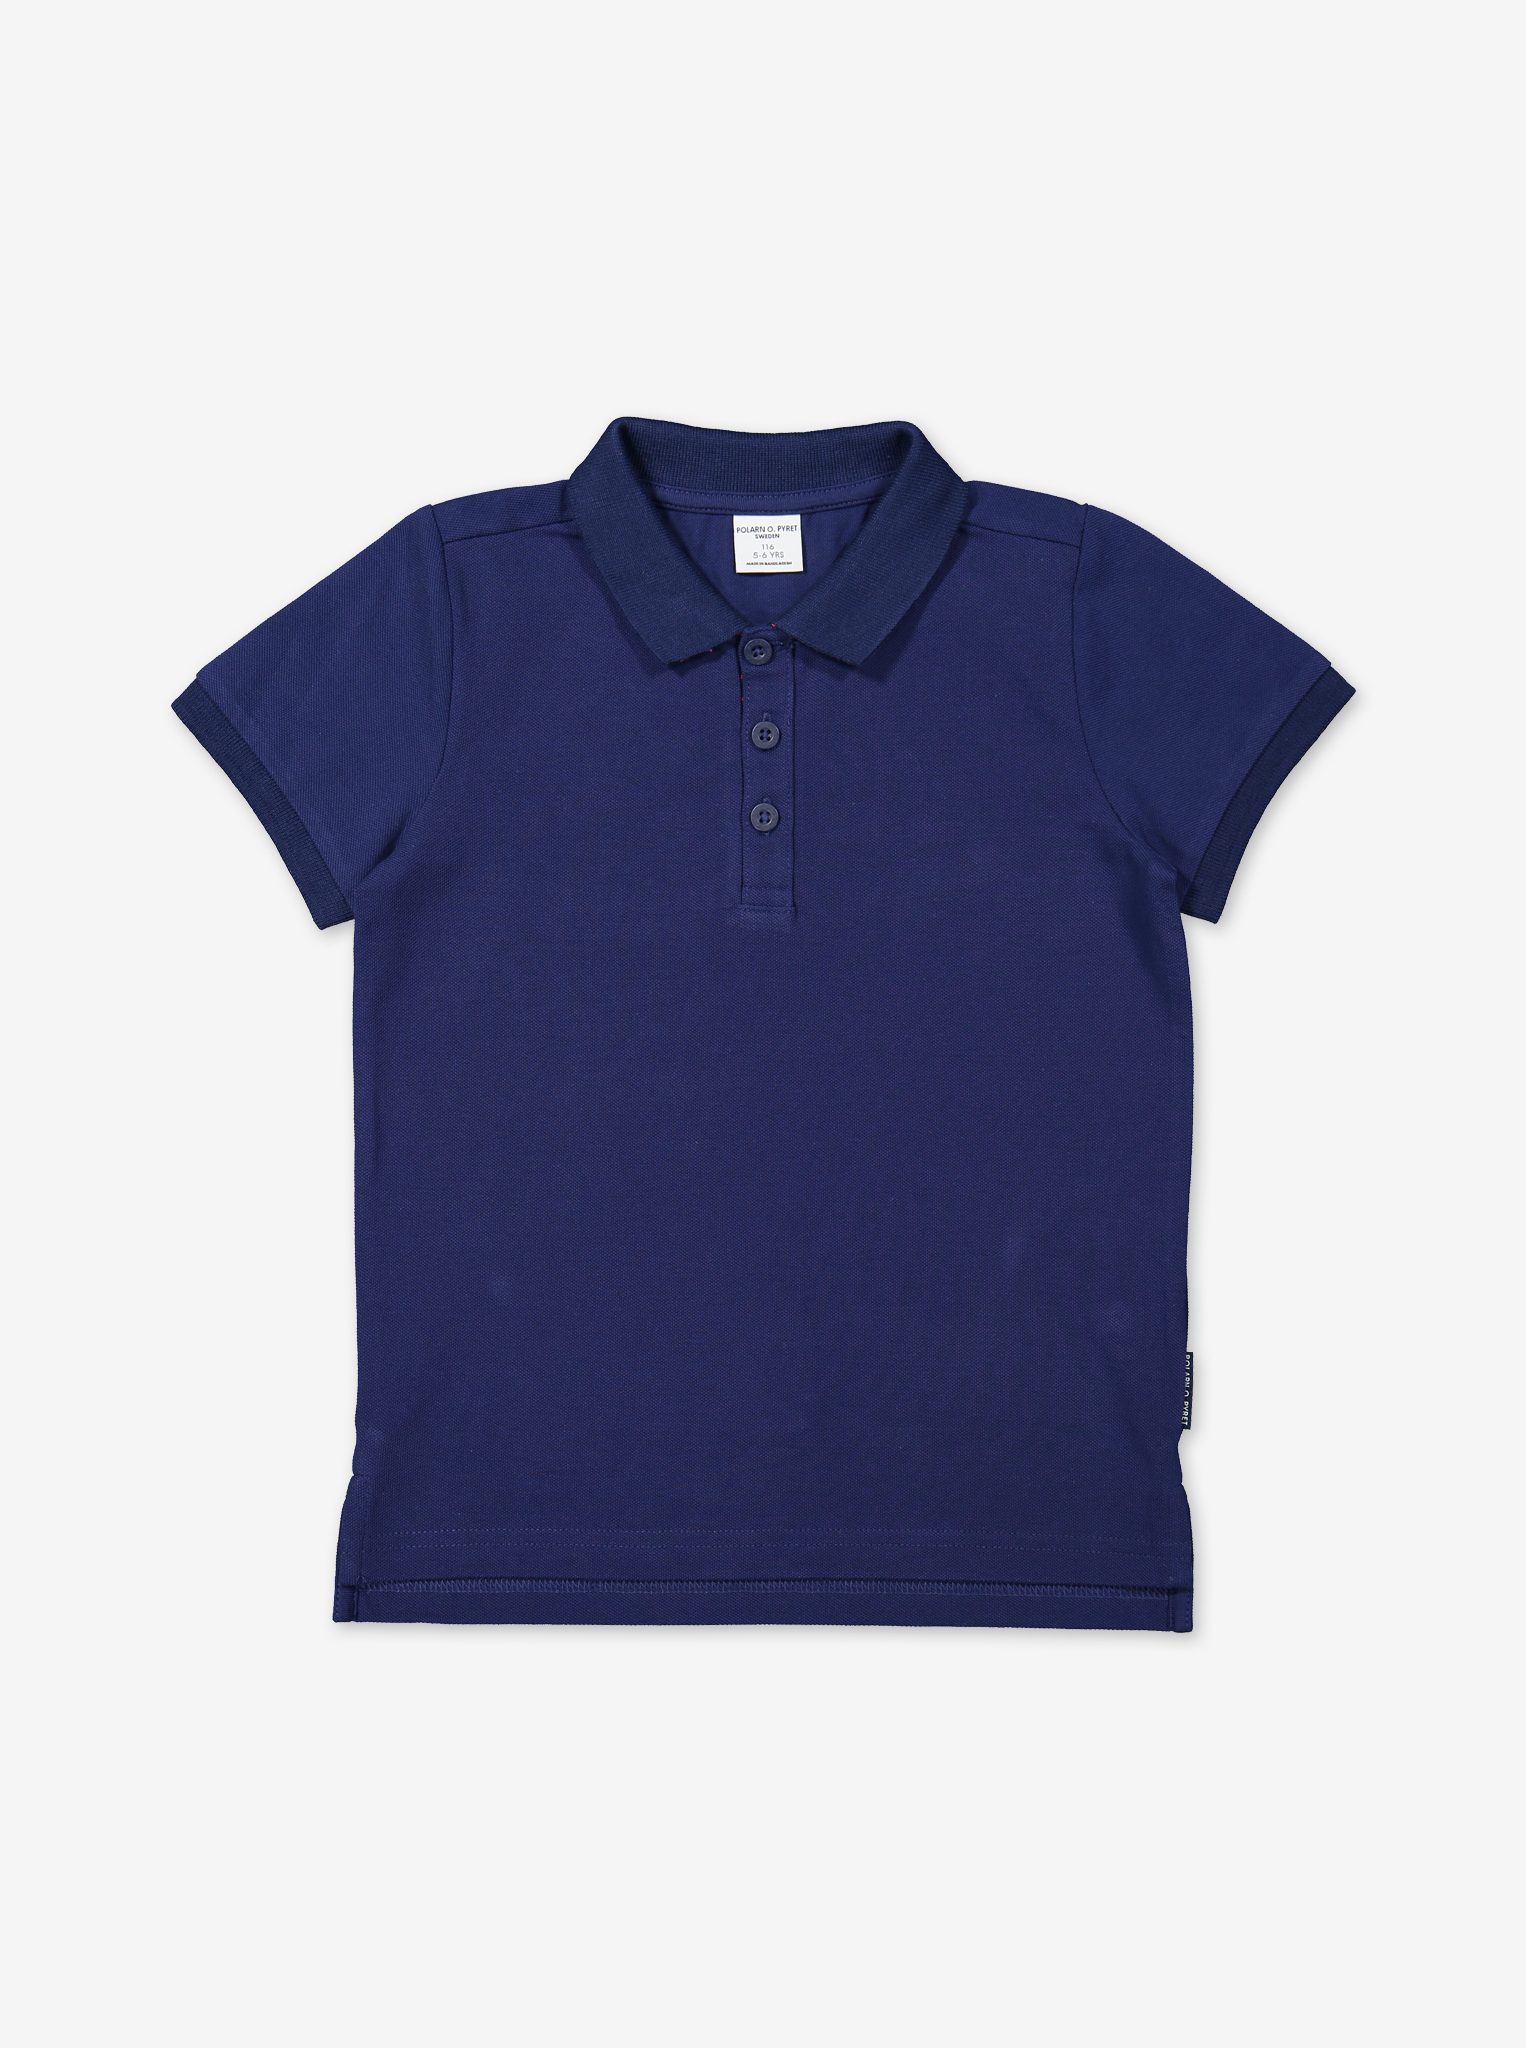 Polo shirt-Boy-1-12y-Blue